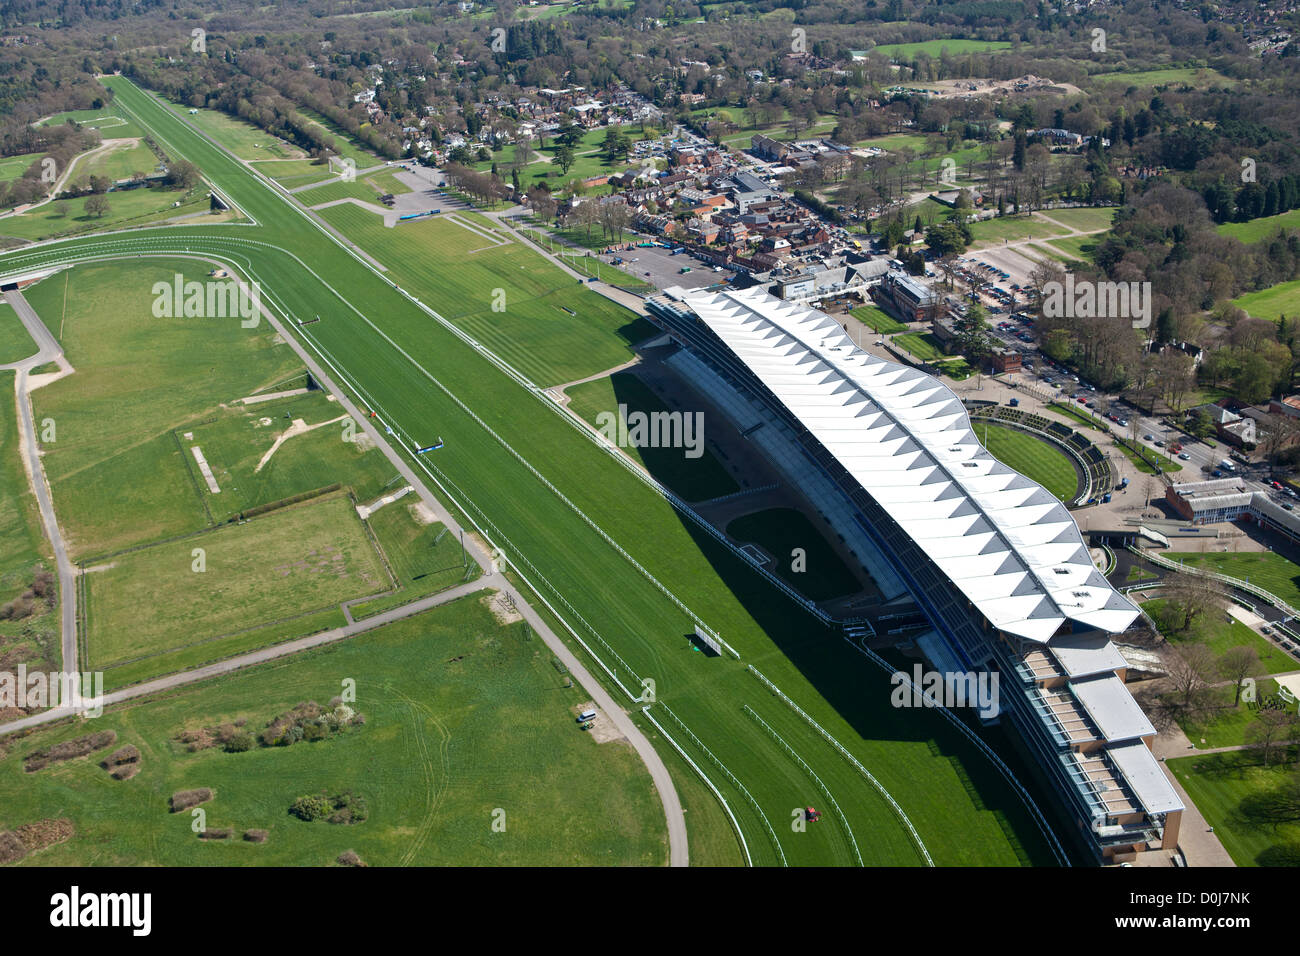 An aerial view of the main grandstand at Ascot Racecourse. Stock Photo